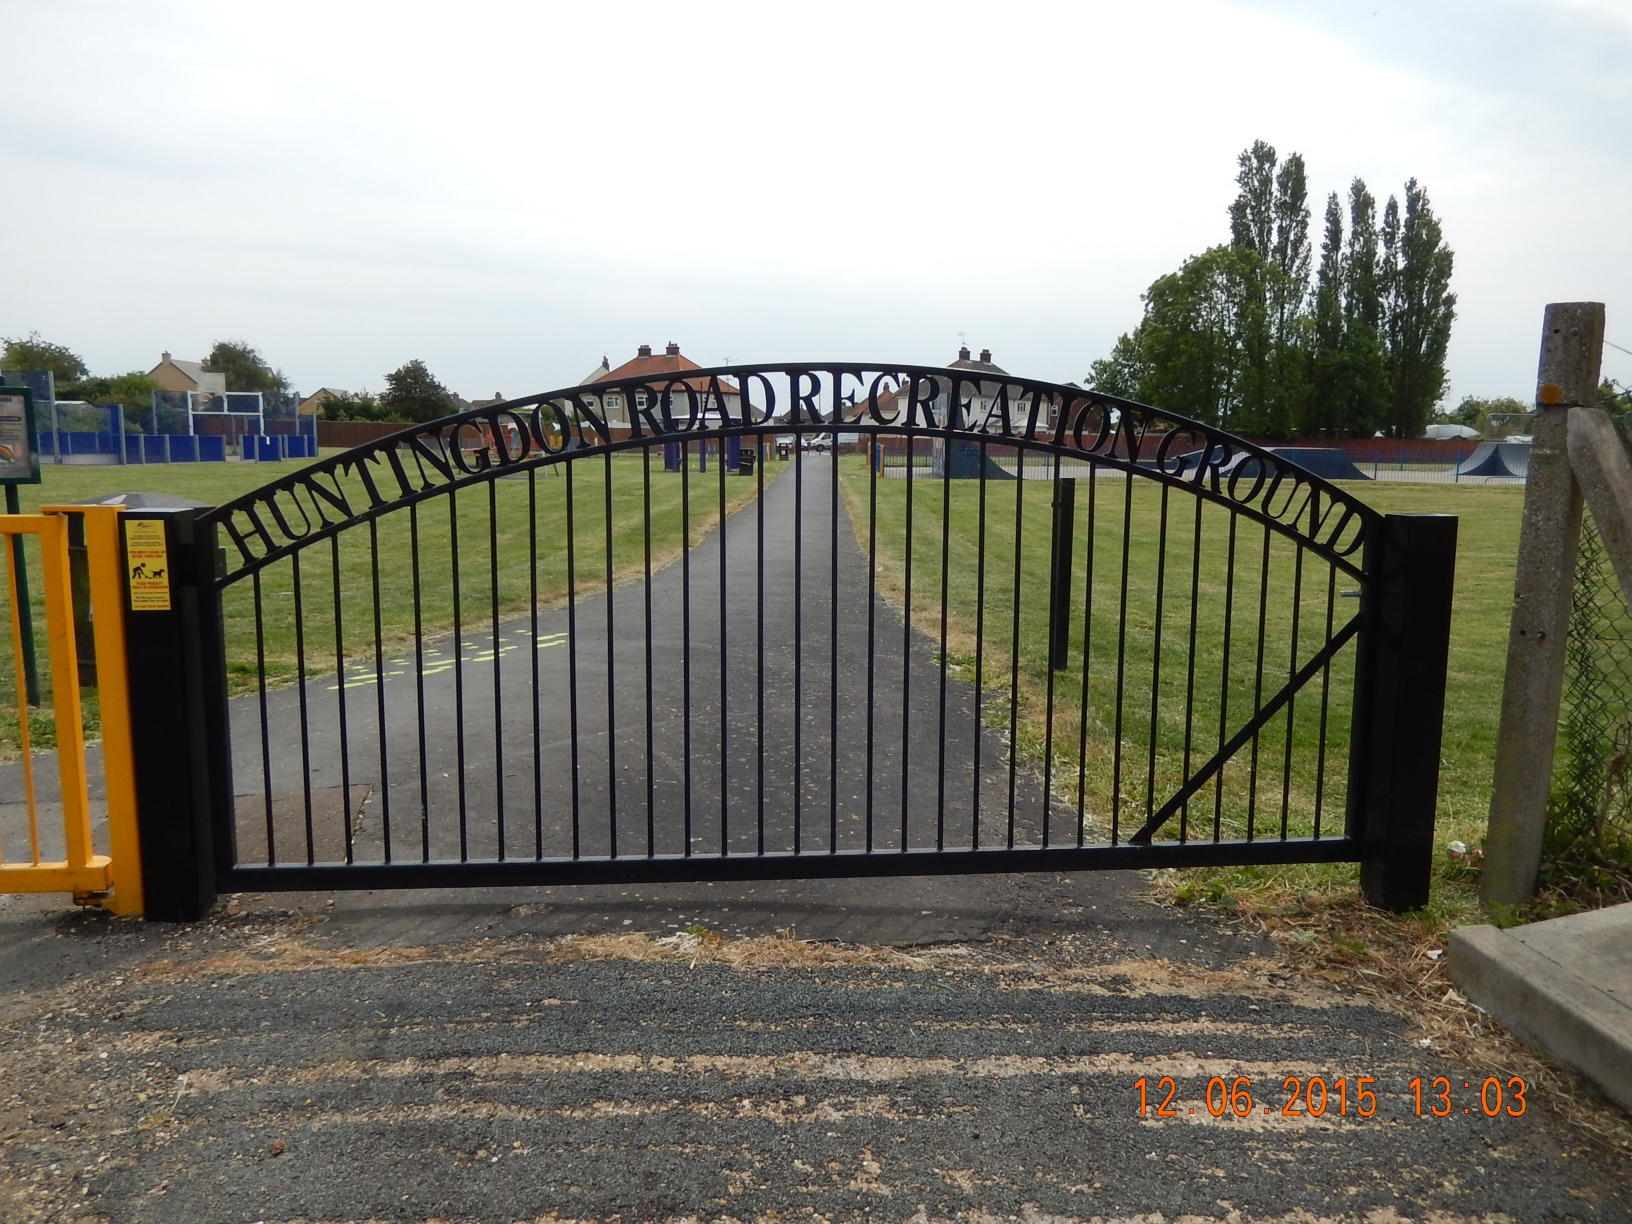 Gates to Park Huntingdon Road Chatteris | Other parks